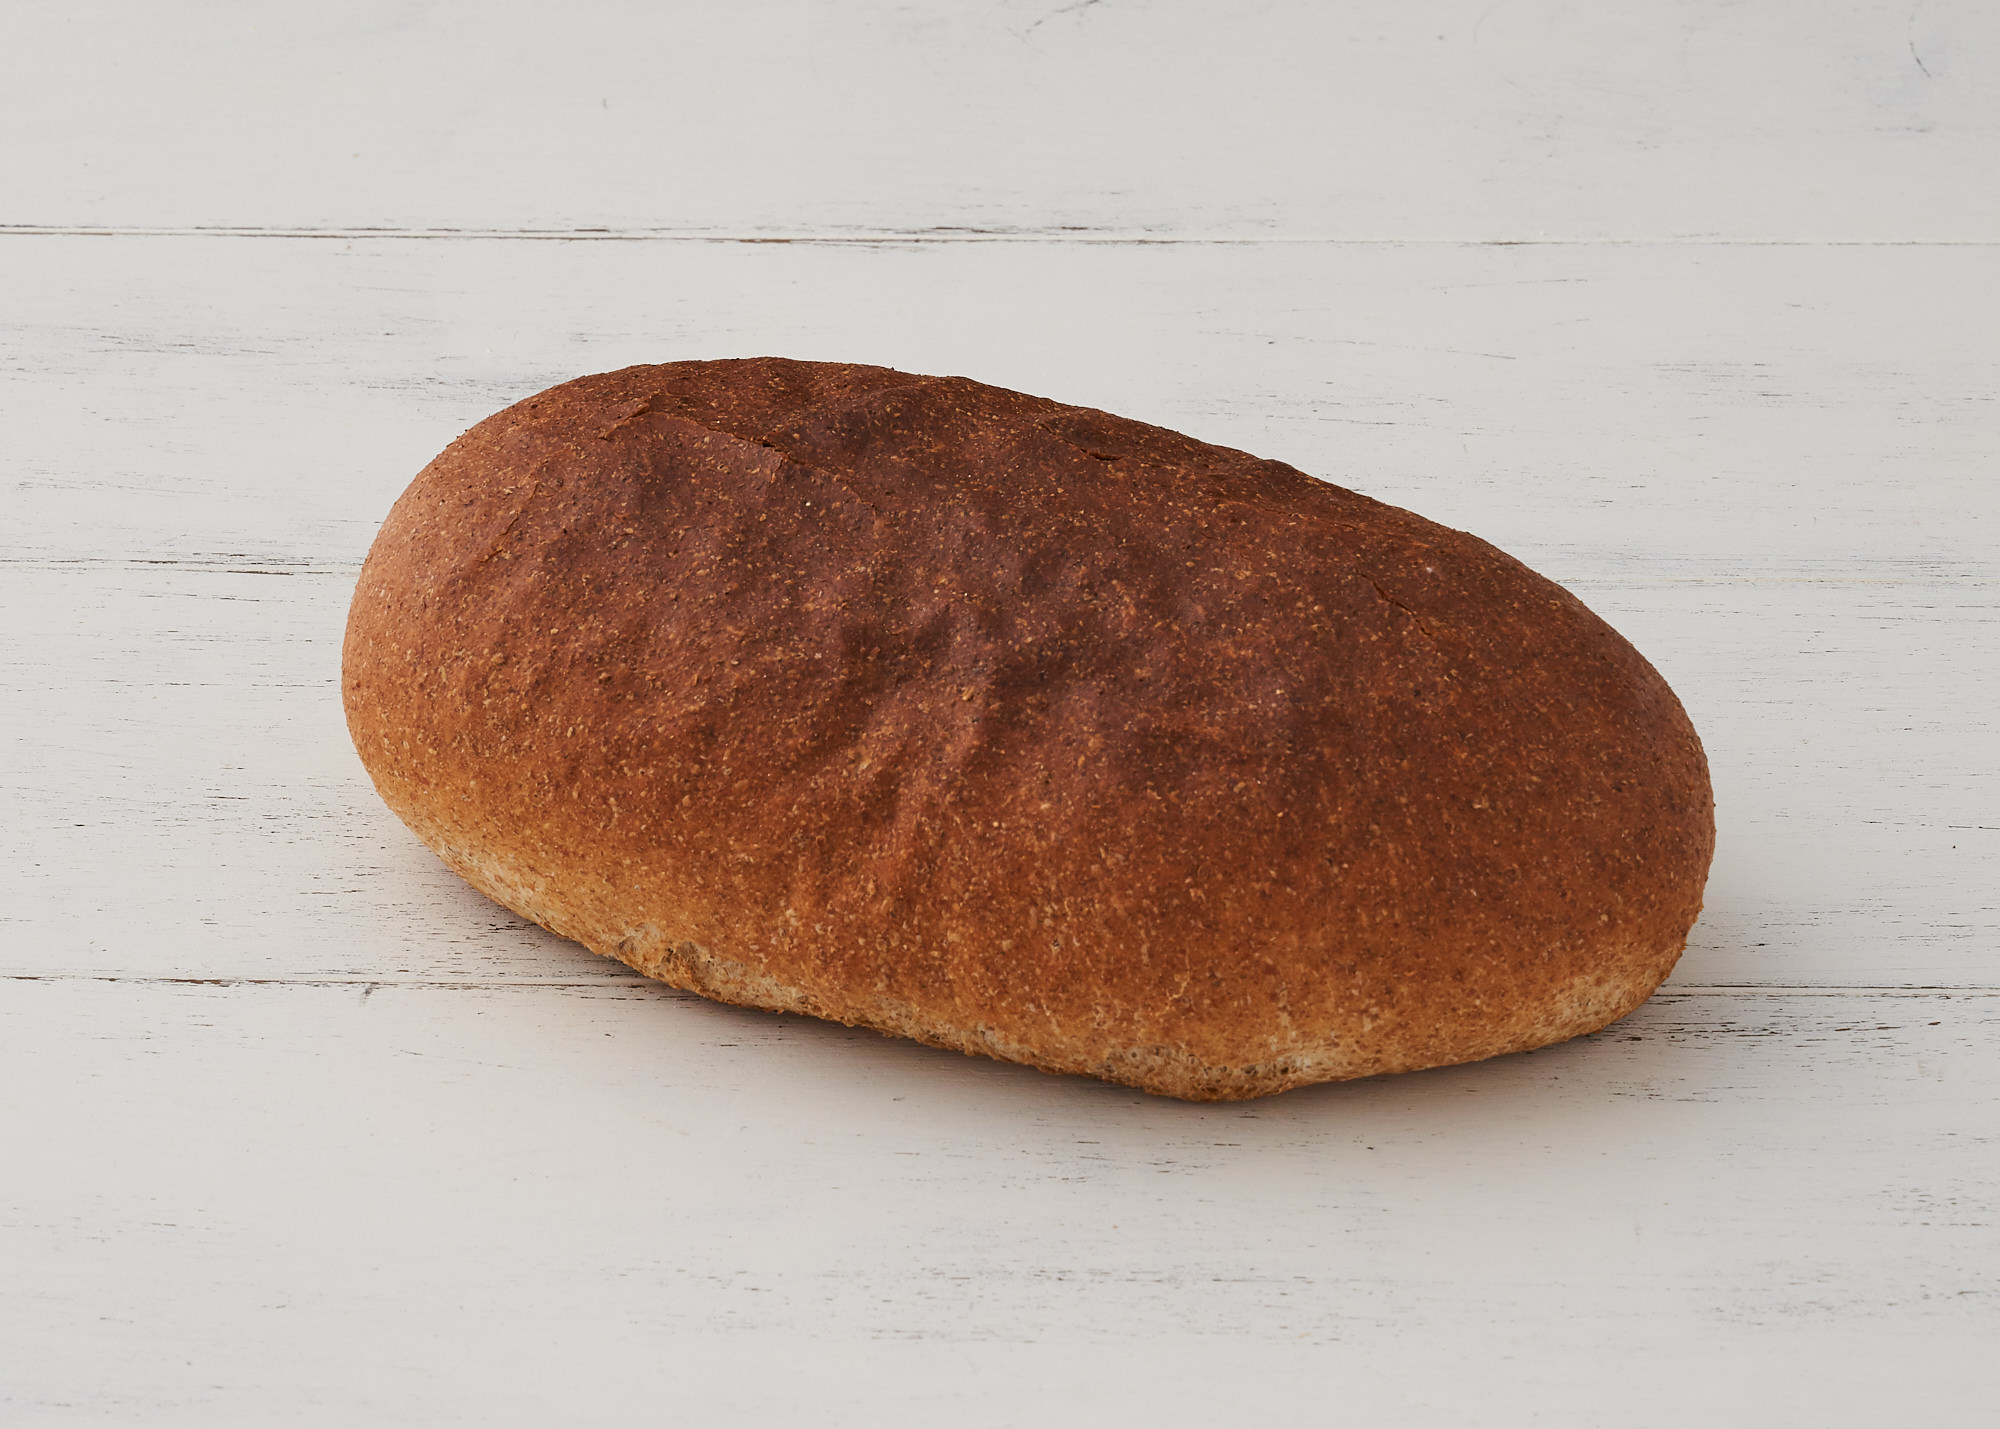 Wholemeal - A delicious light wholemeal Loaf with a soft crumb, great for sandwiches or toasting.